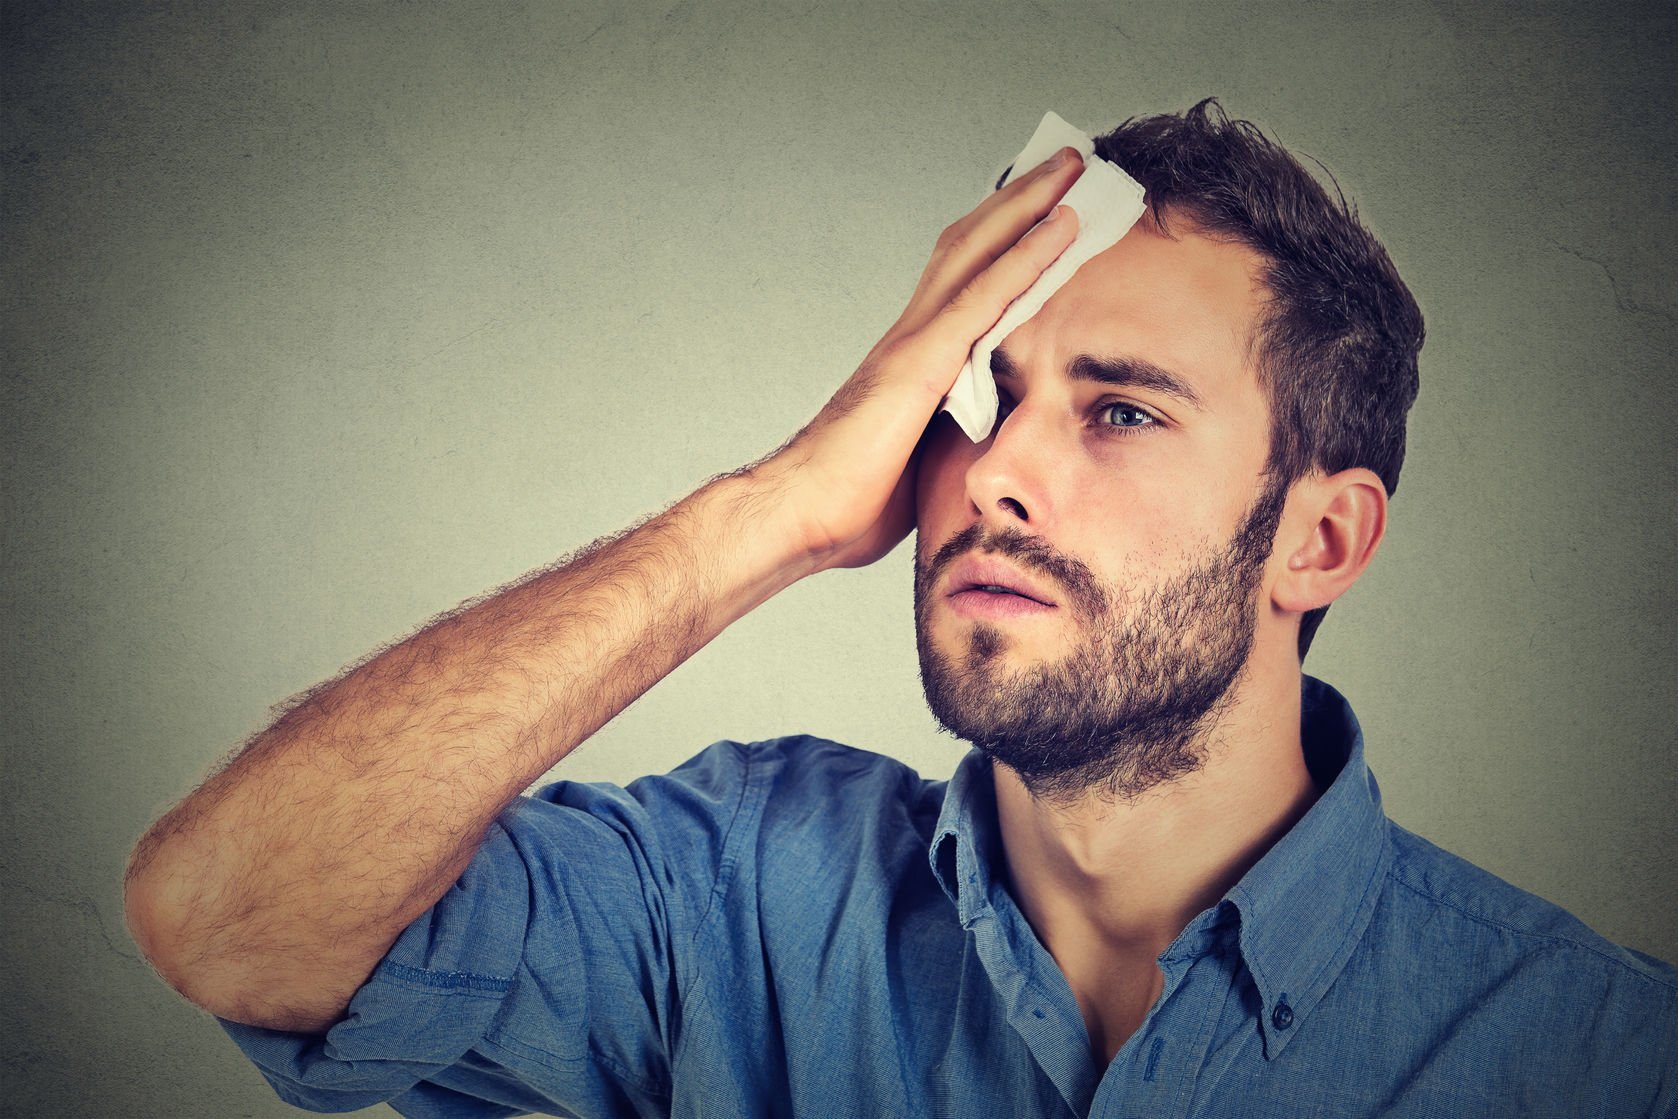 46737381 - tired man stressed sweating having fever headache isolated on gray wall background. worried guy wipes sweat on his face